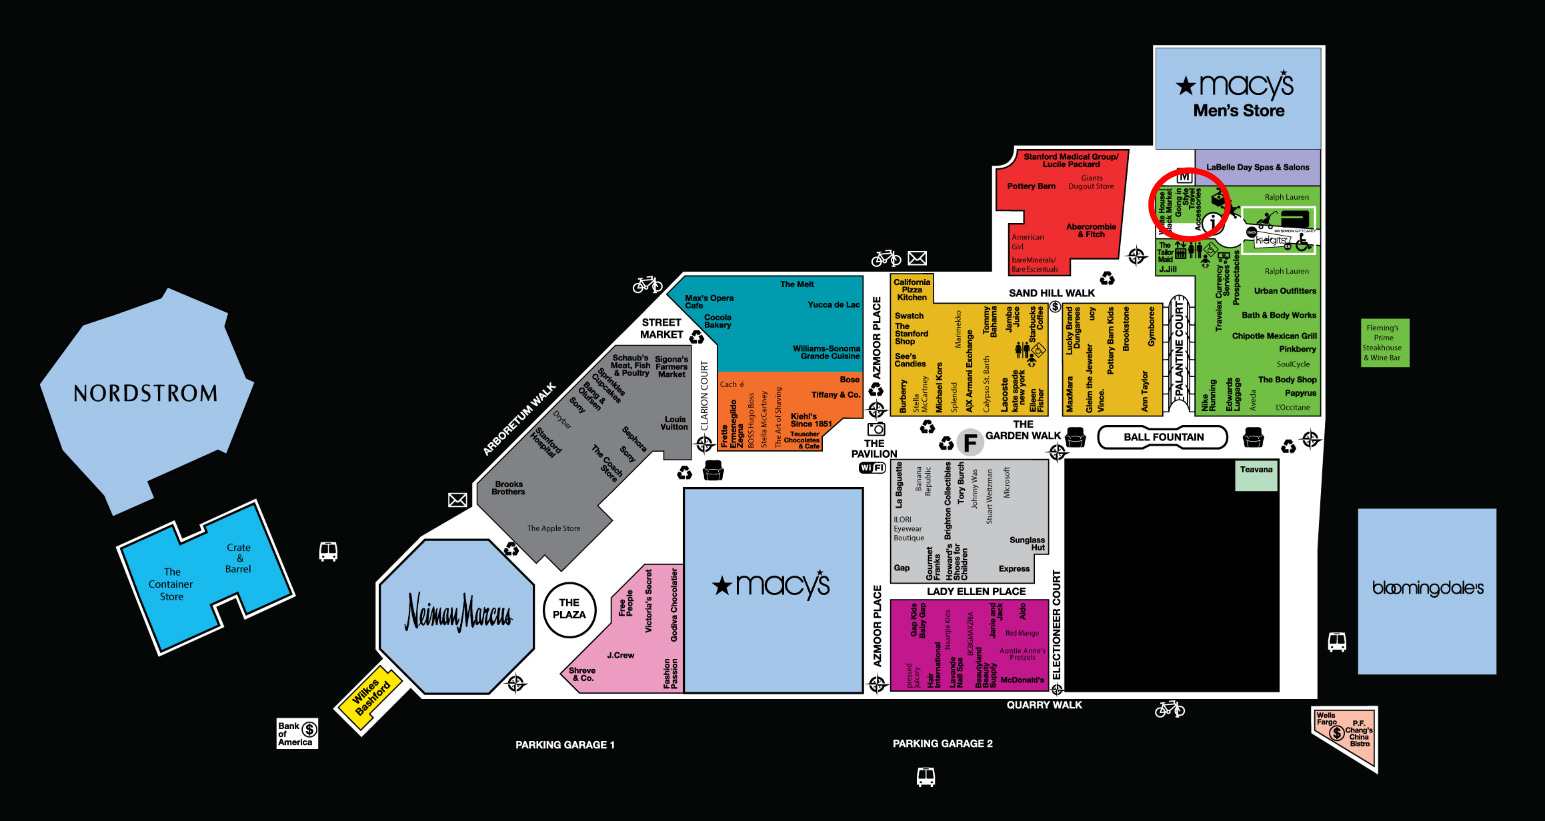 map-of-stanford-shopping-mall-with-all-stores